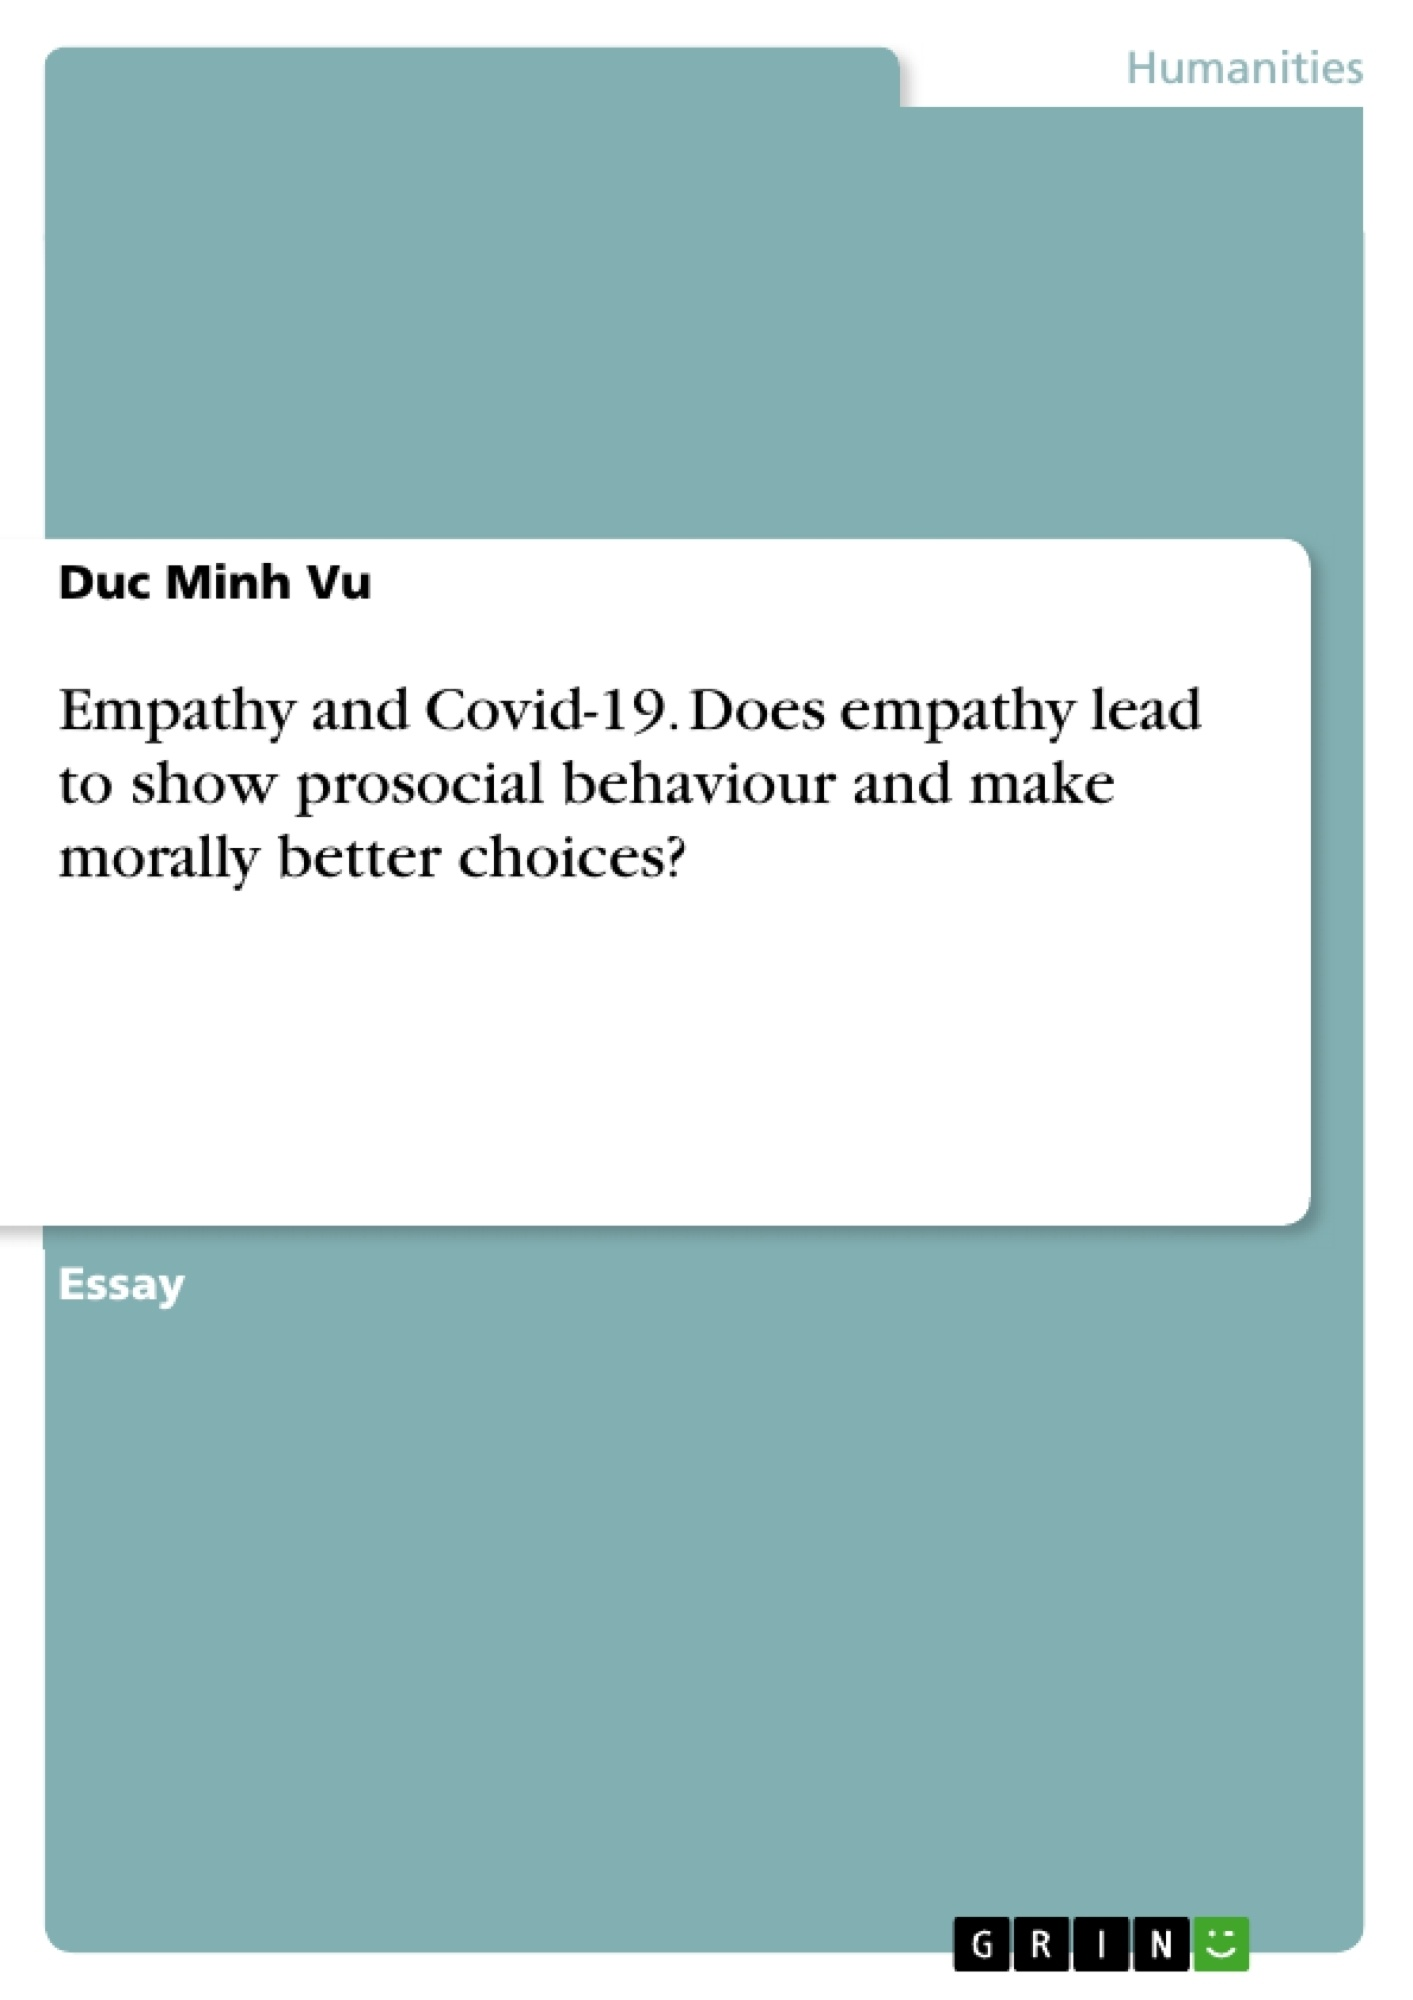 Title: Empathy and Covid-19. Does empathy lead to show prosocial behaviour and make morally better choices?